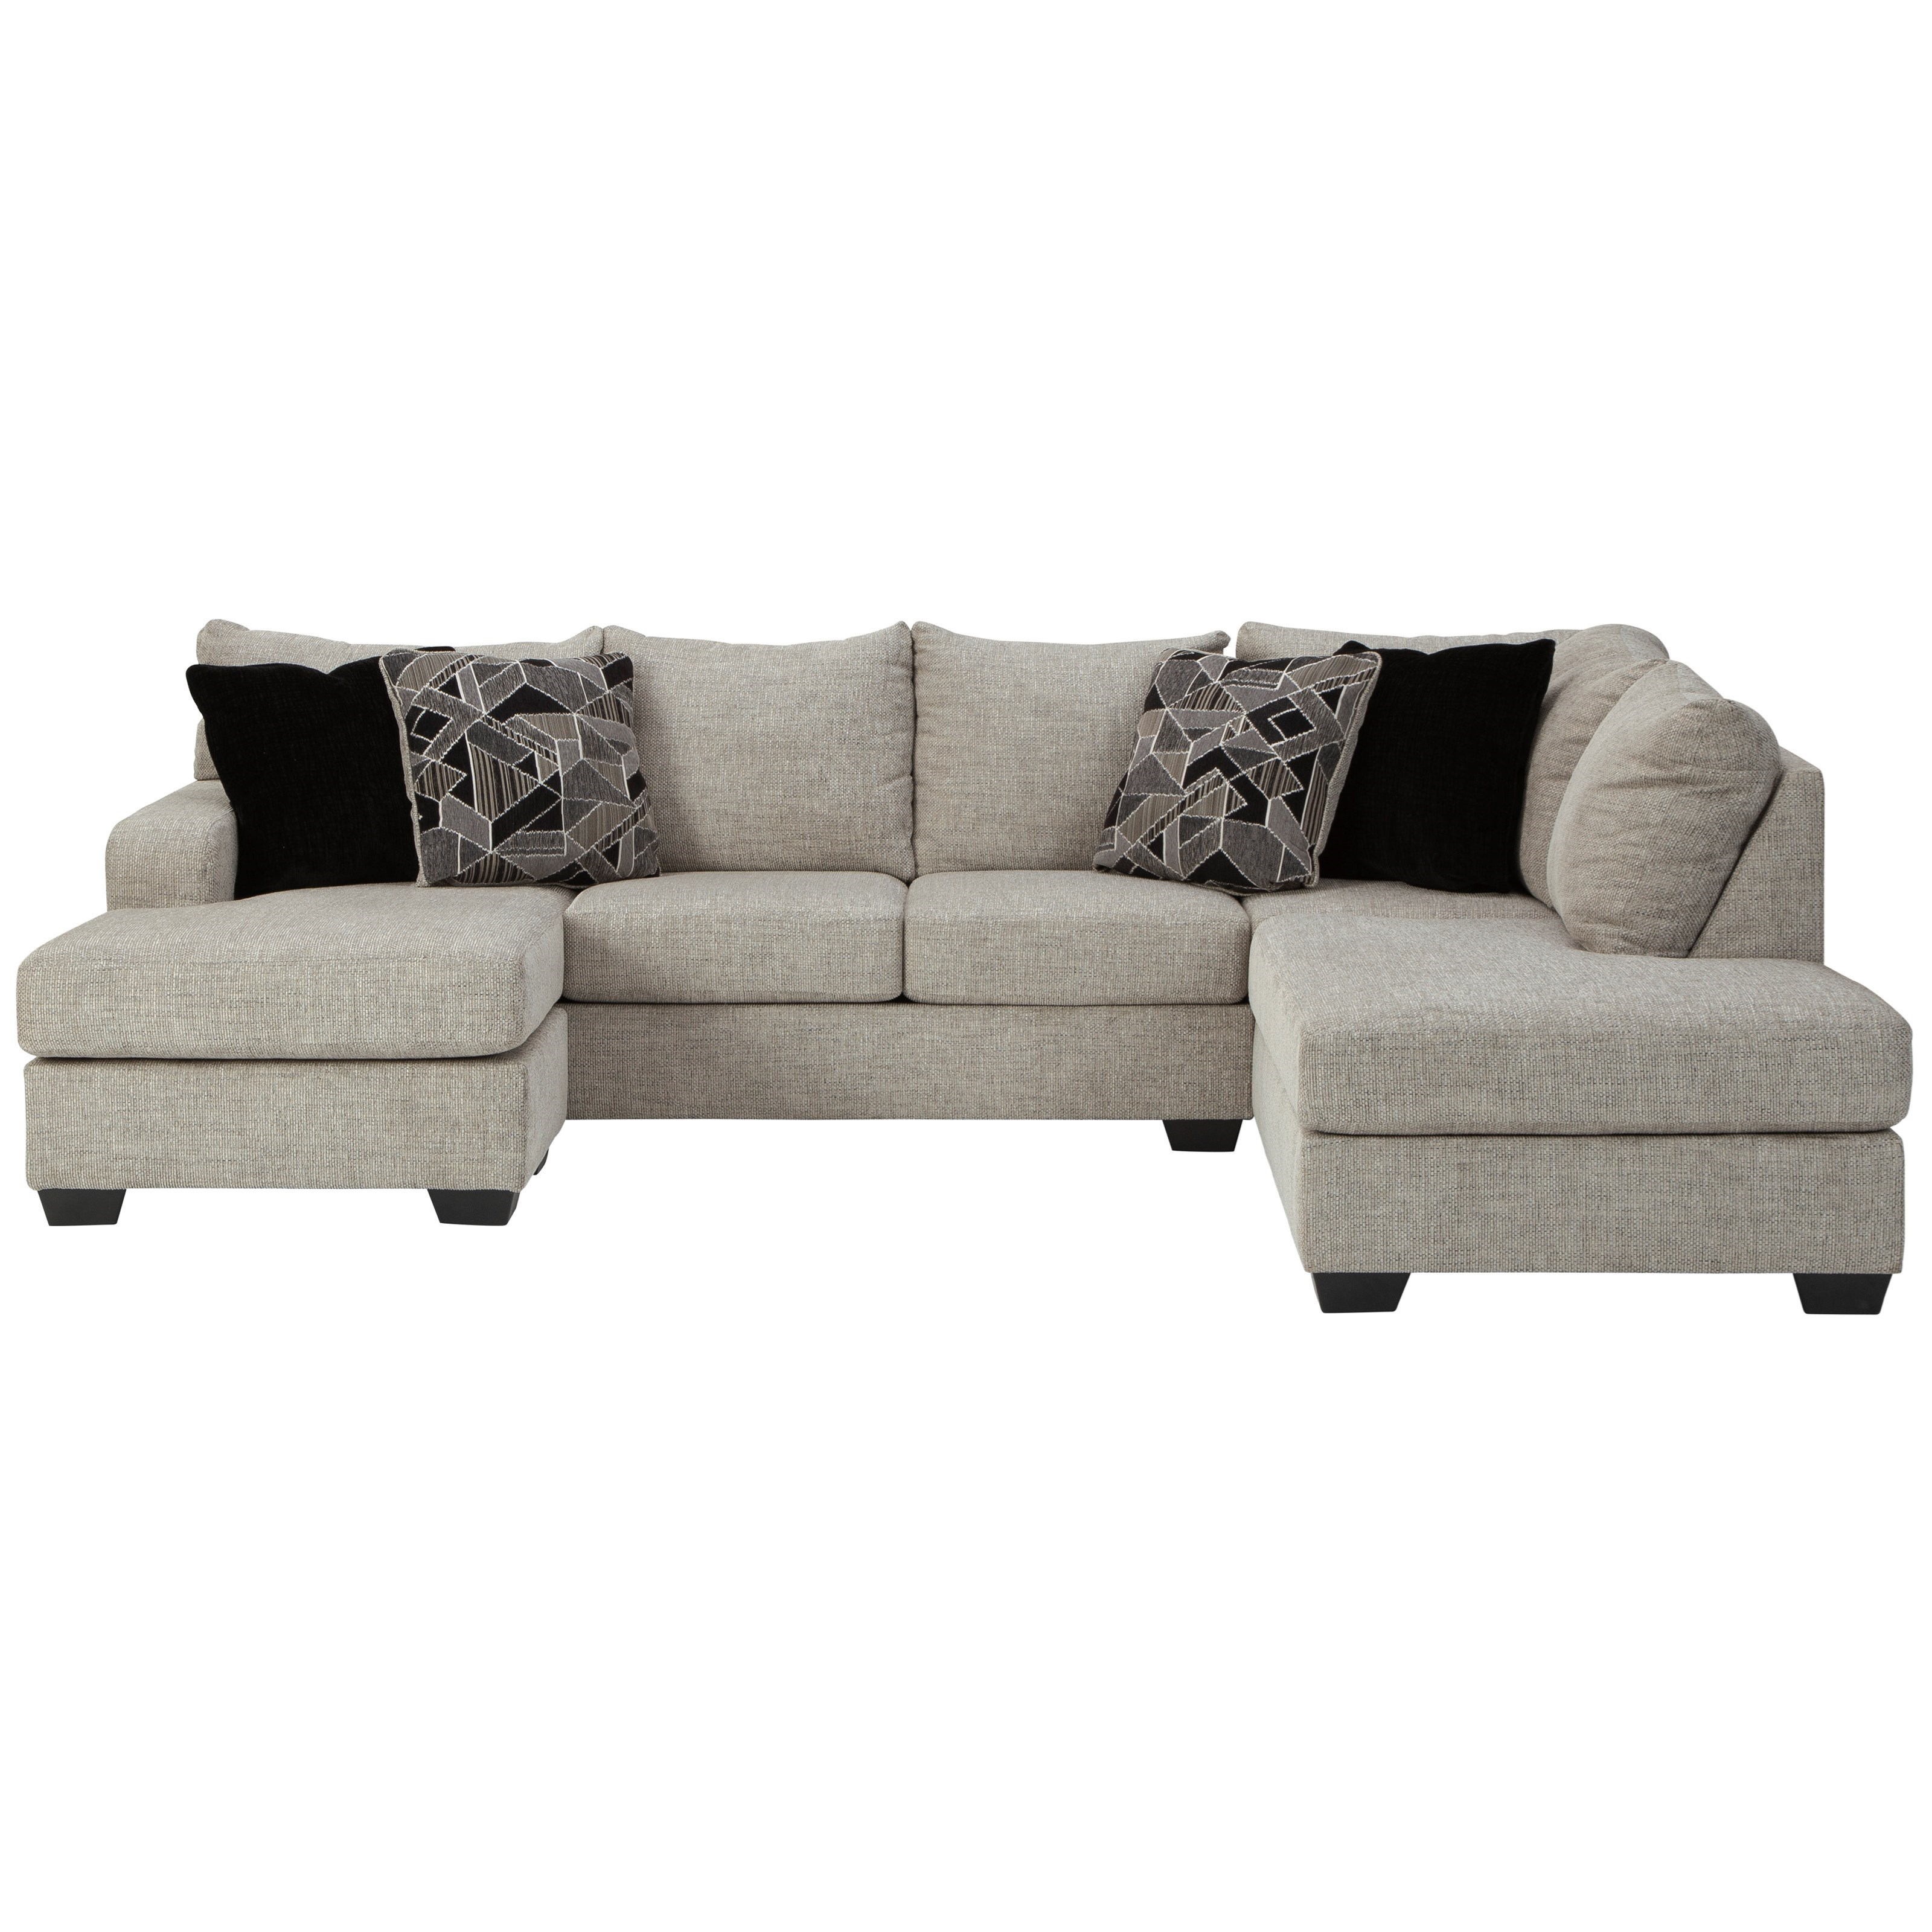 Megginson Sectional by Benchcraft at Northeast Factory Direct